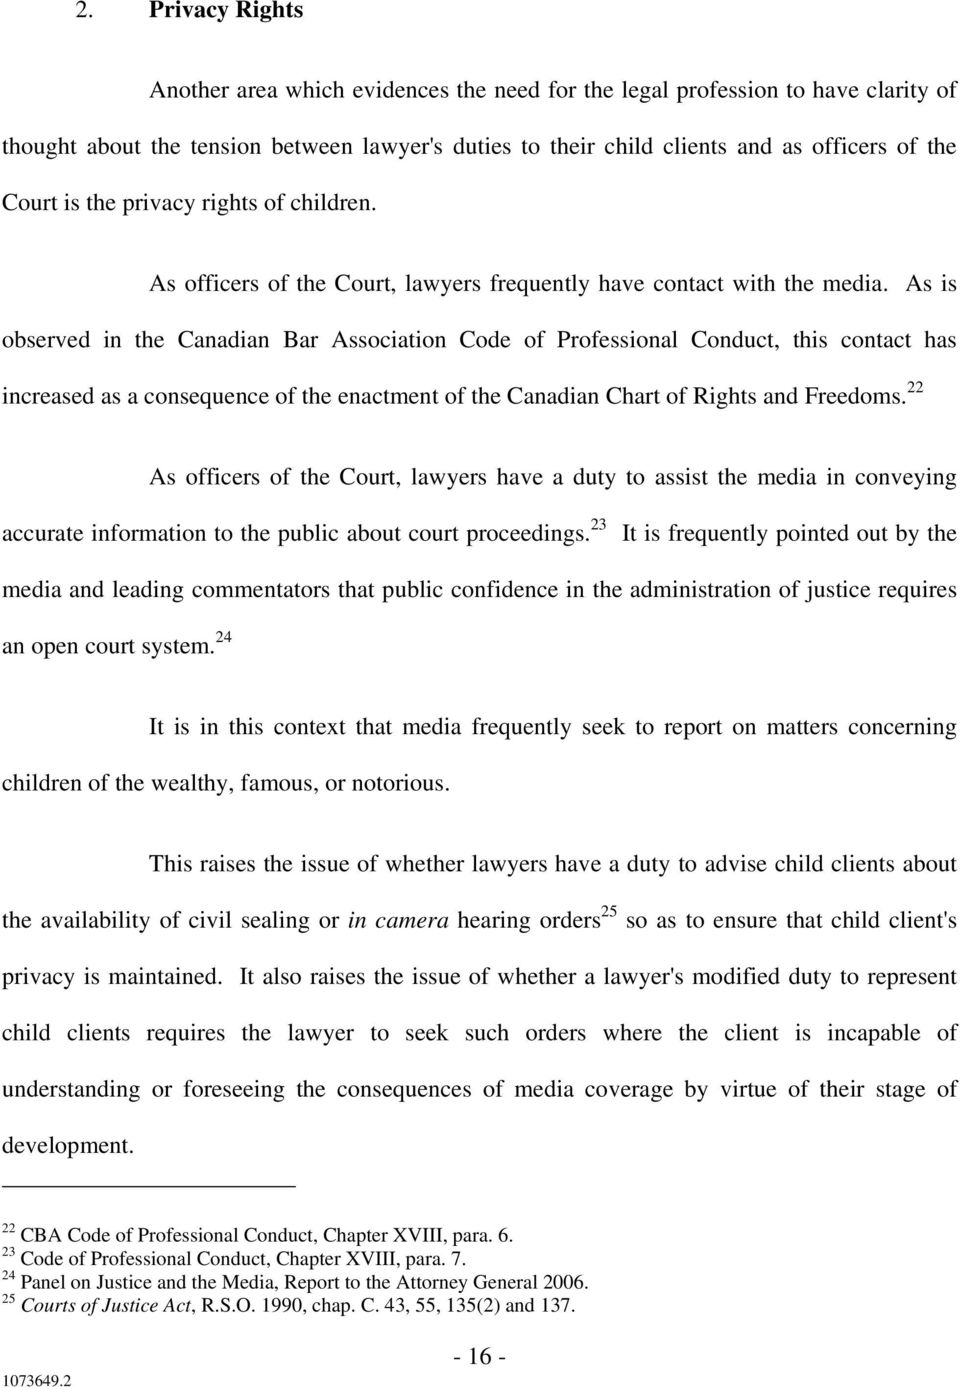 As is observed in the Canadian Bar Association Code of Professional Conduct, this contact has increased as a consequence of the enactment of the Canadian Chart of Rights and Freedoms.